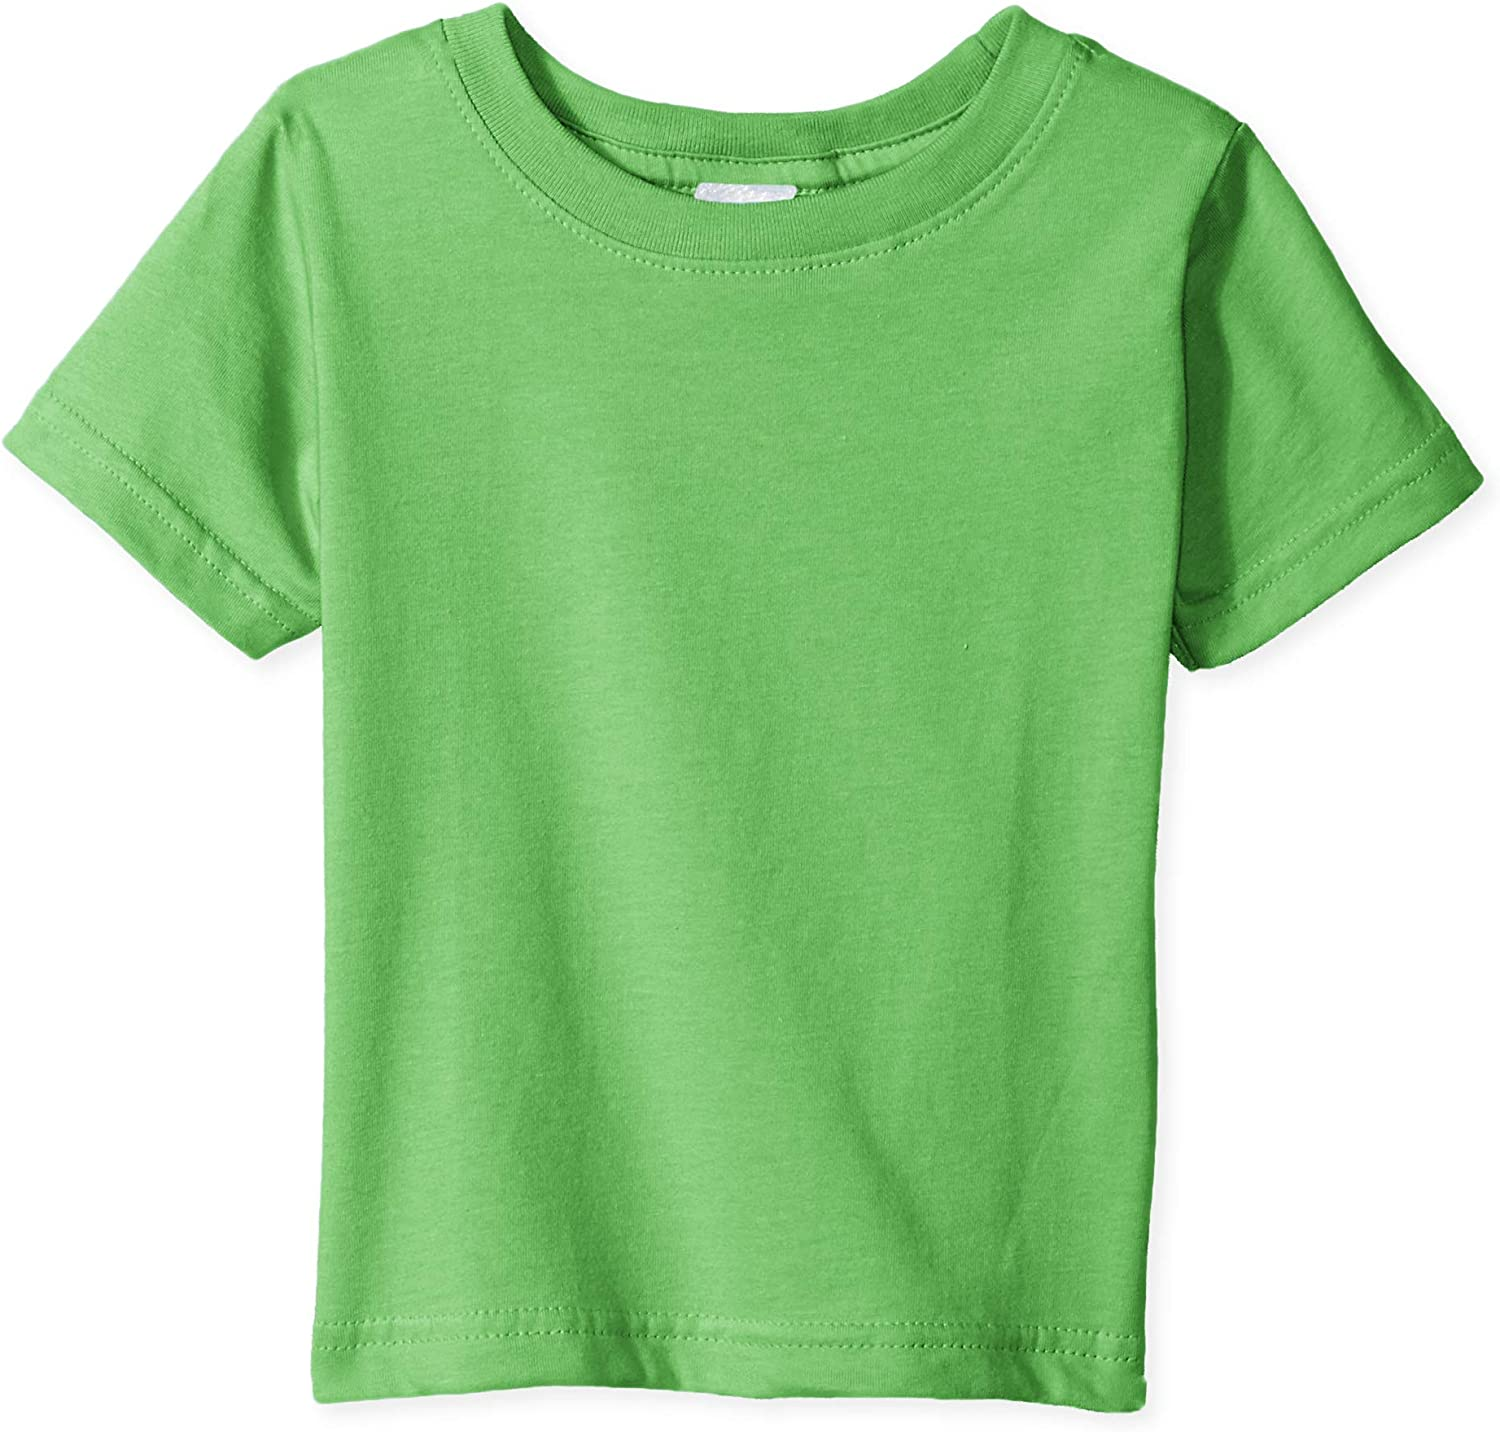 Clementine Baby Boys' Infant Fine Durable Jersey Tees Short Sleeve Crewneck T-Shirt